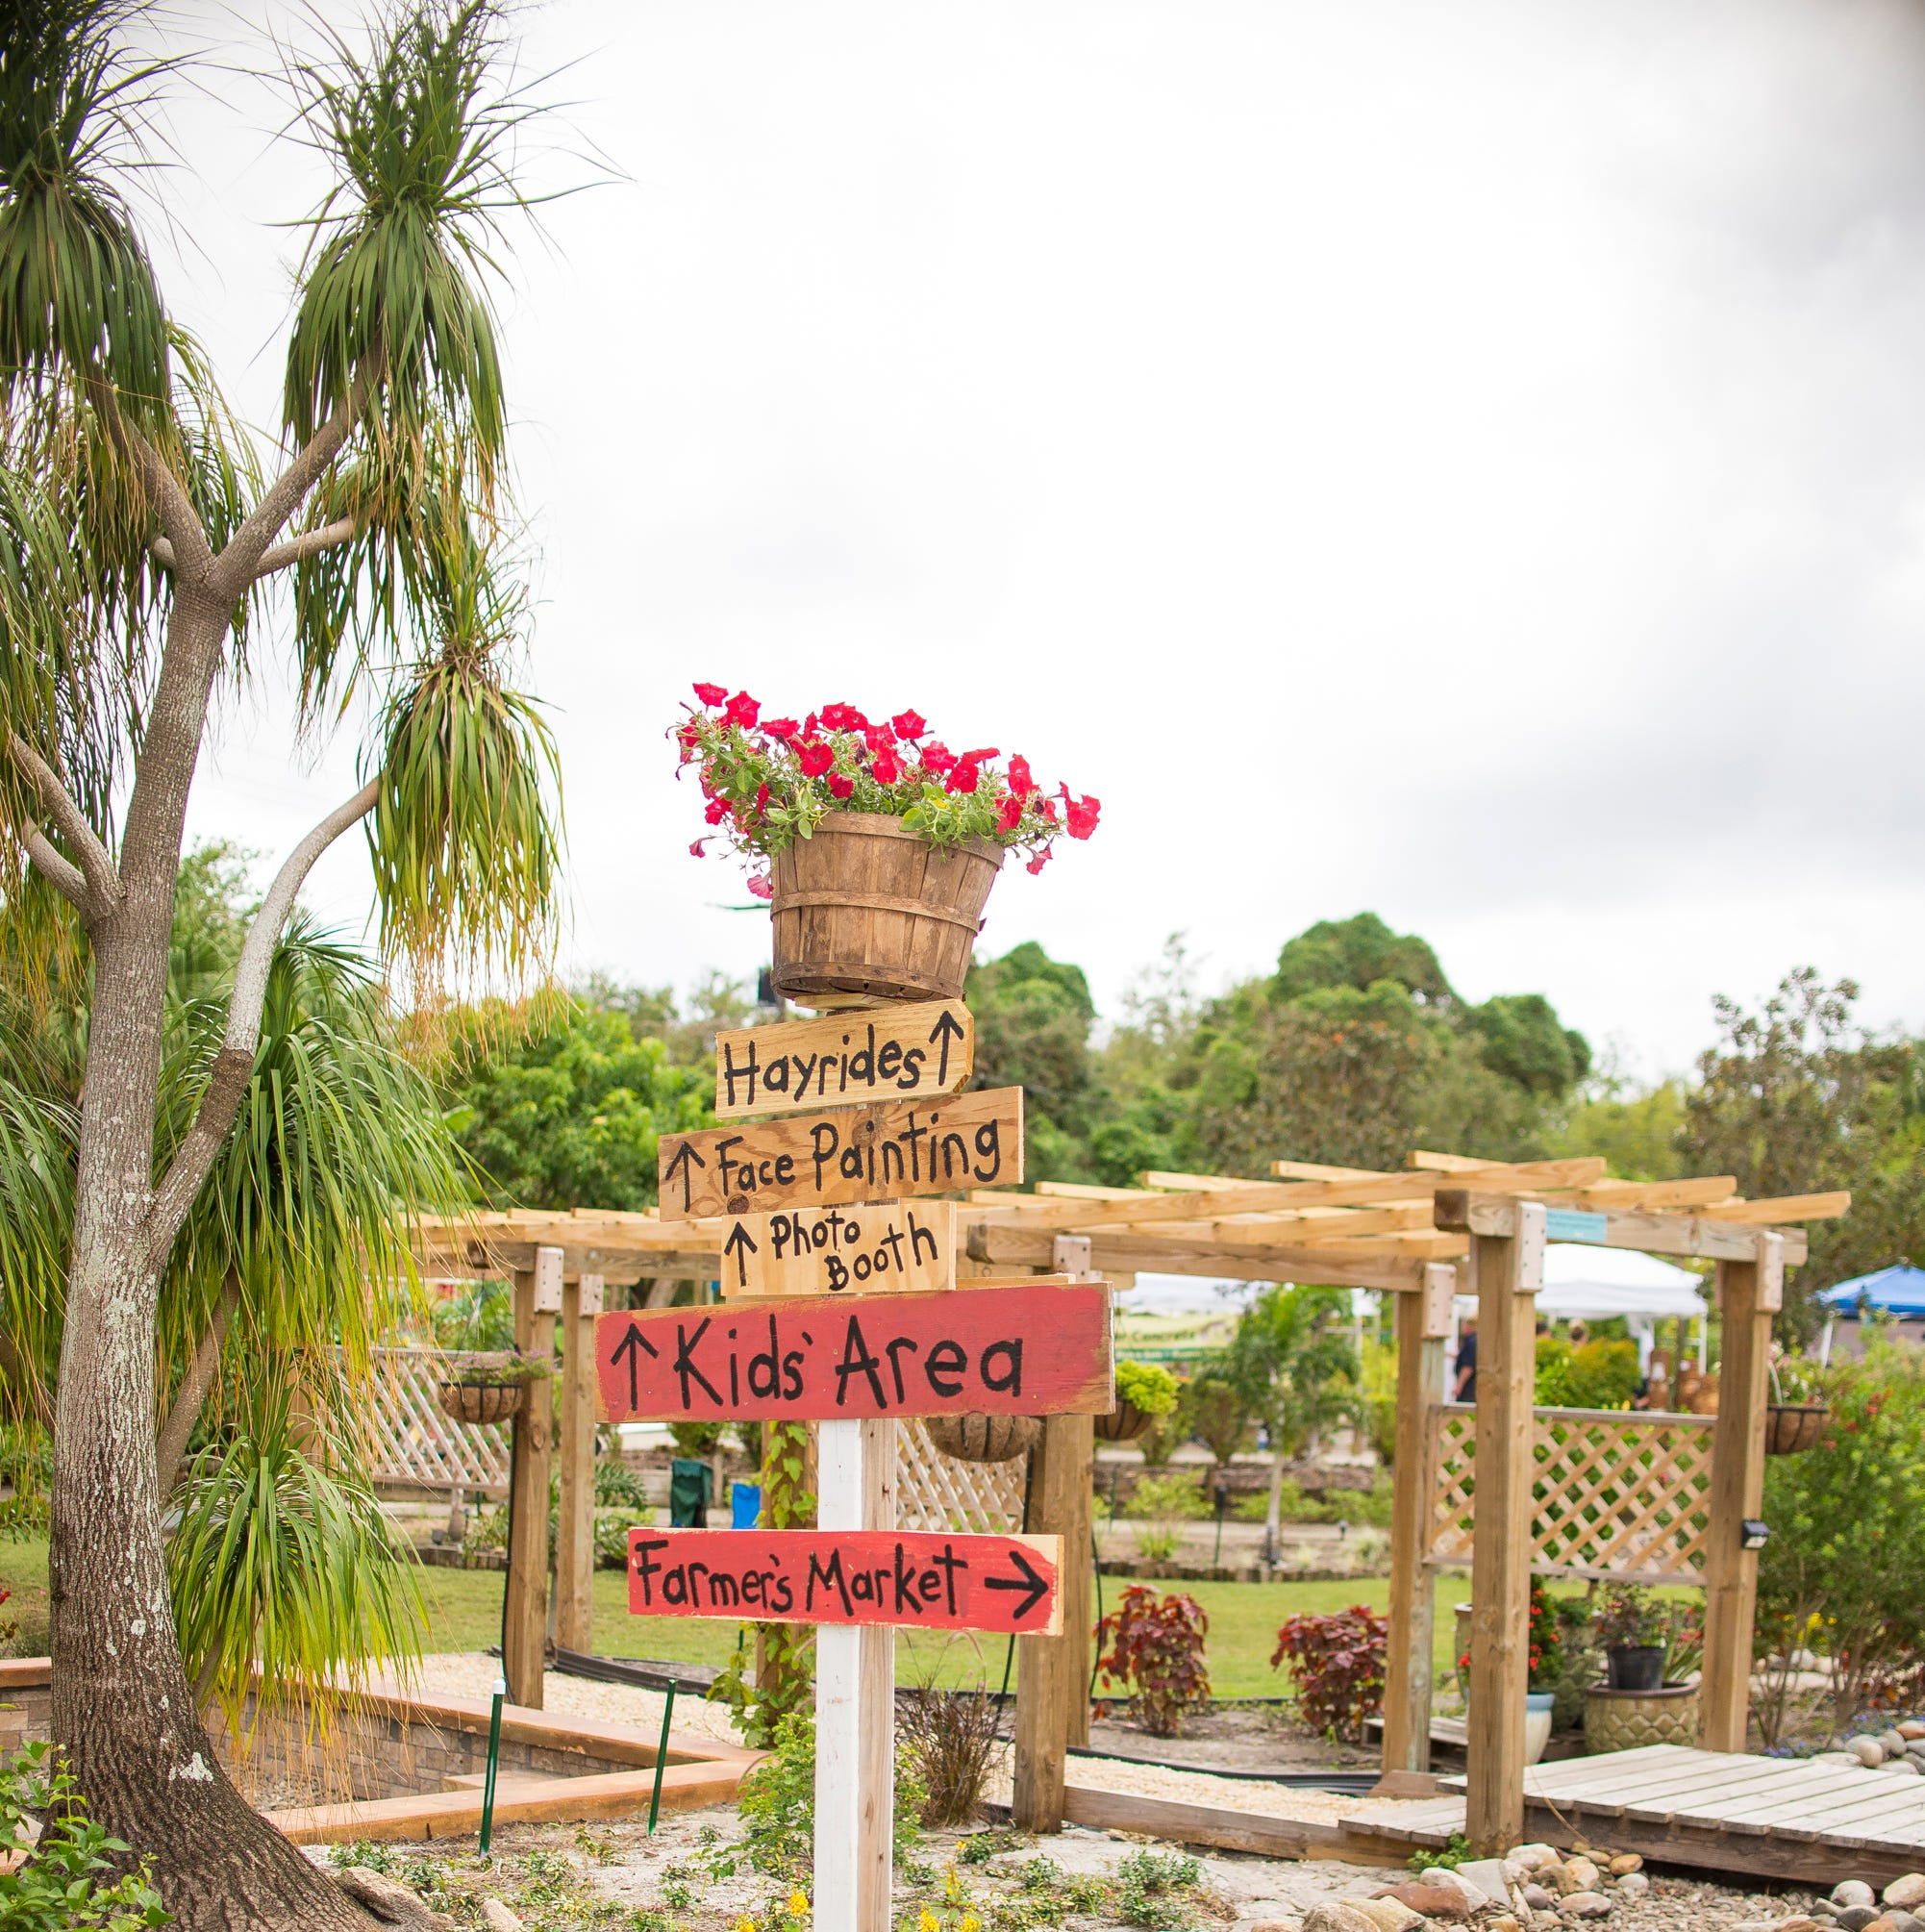 Rockledge Gardens Fall Festival this weekend